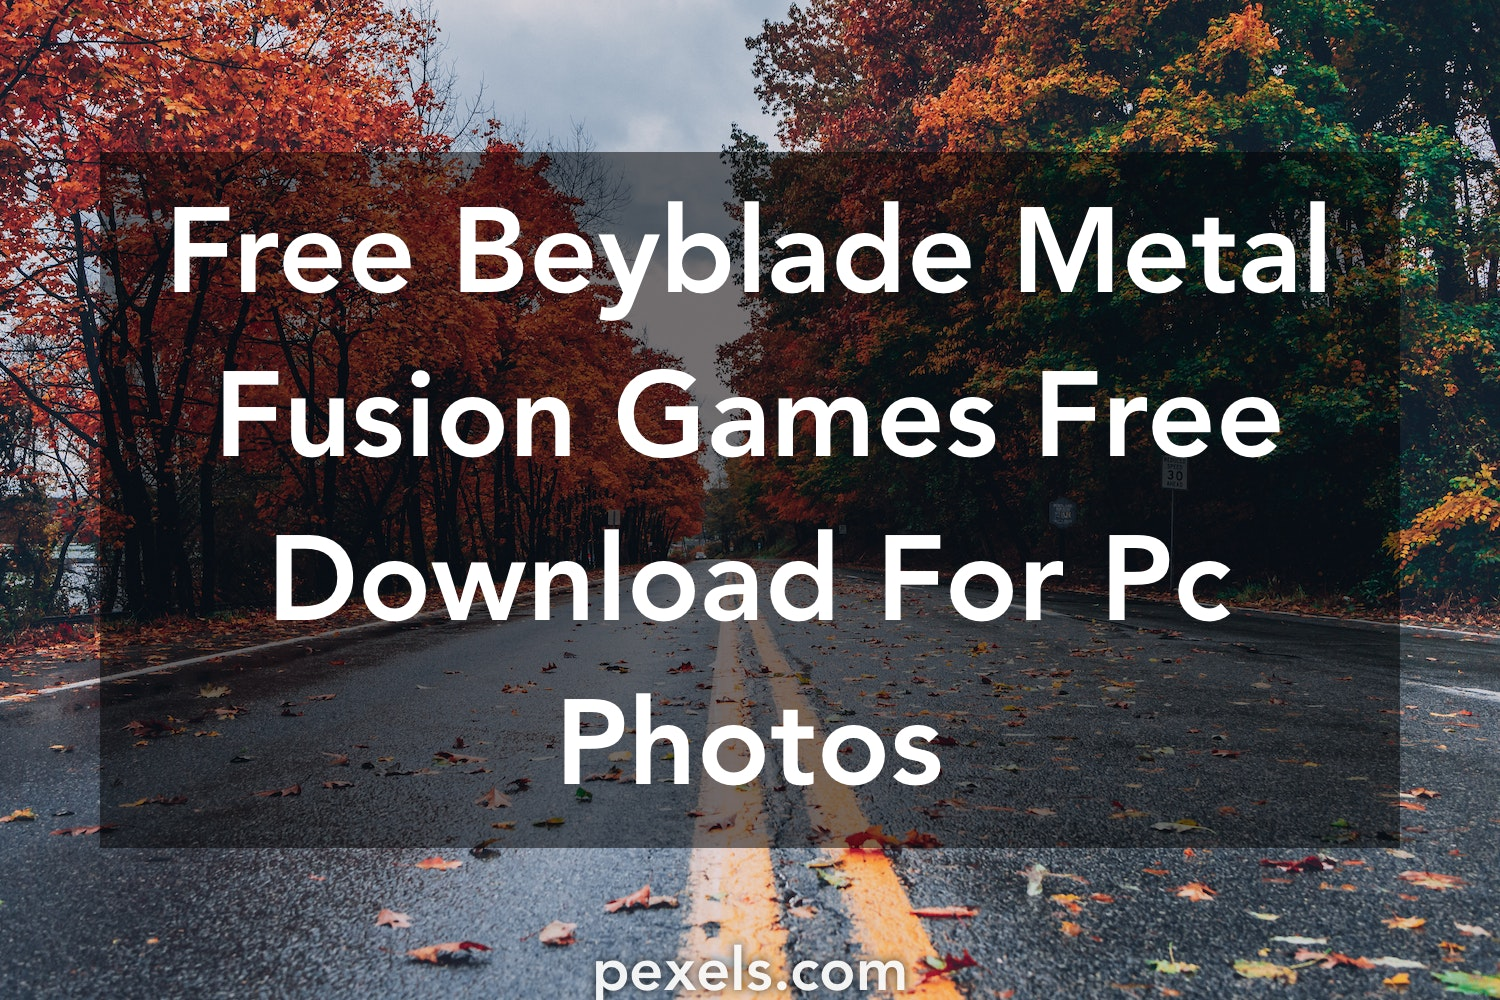 beyblade metal fusion game free download for pc full download